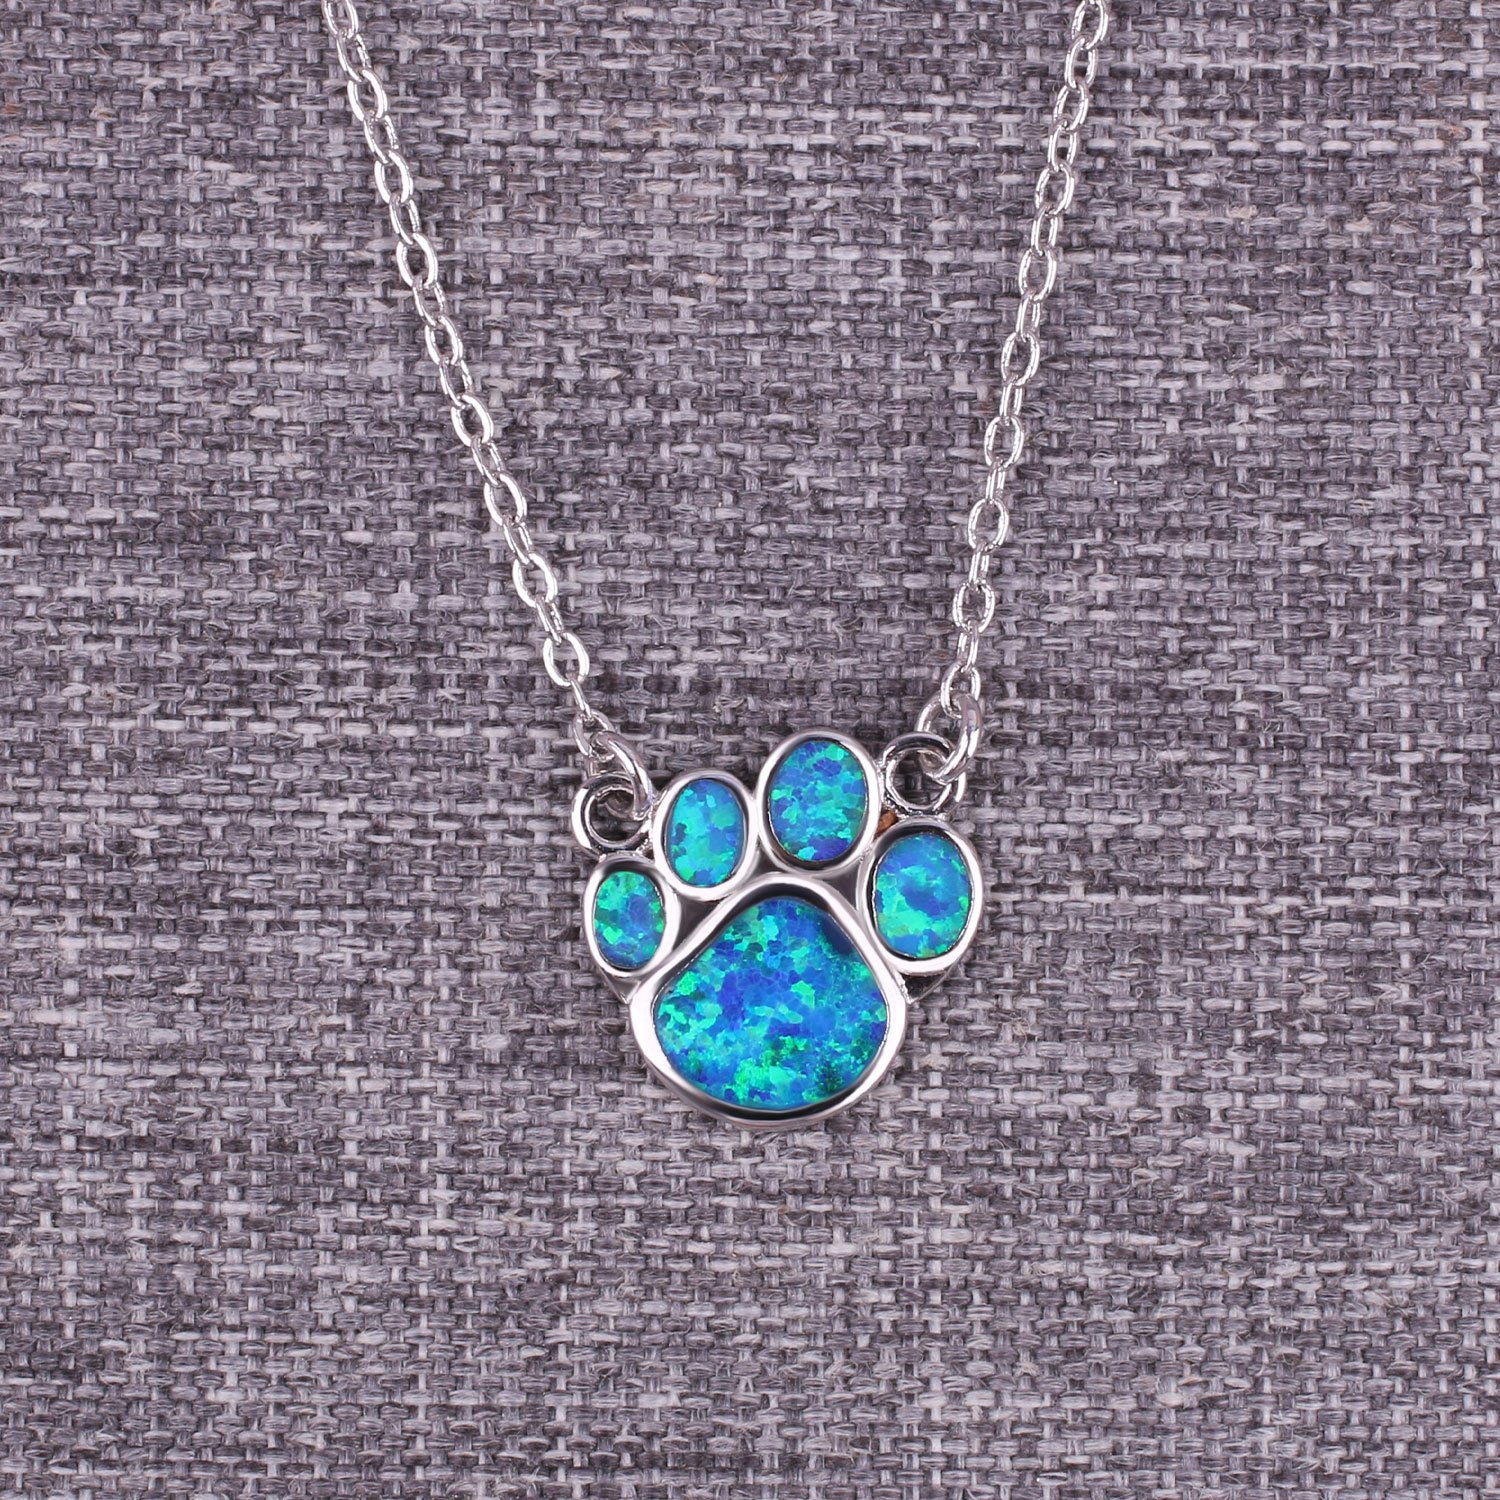 KELITCH Puppy Footprint Pendant Necklace Shiny Created Opal Y Shape Choker Necklace Gift for Friends (Blue) by KELITCH (Image #3)